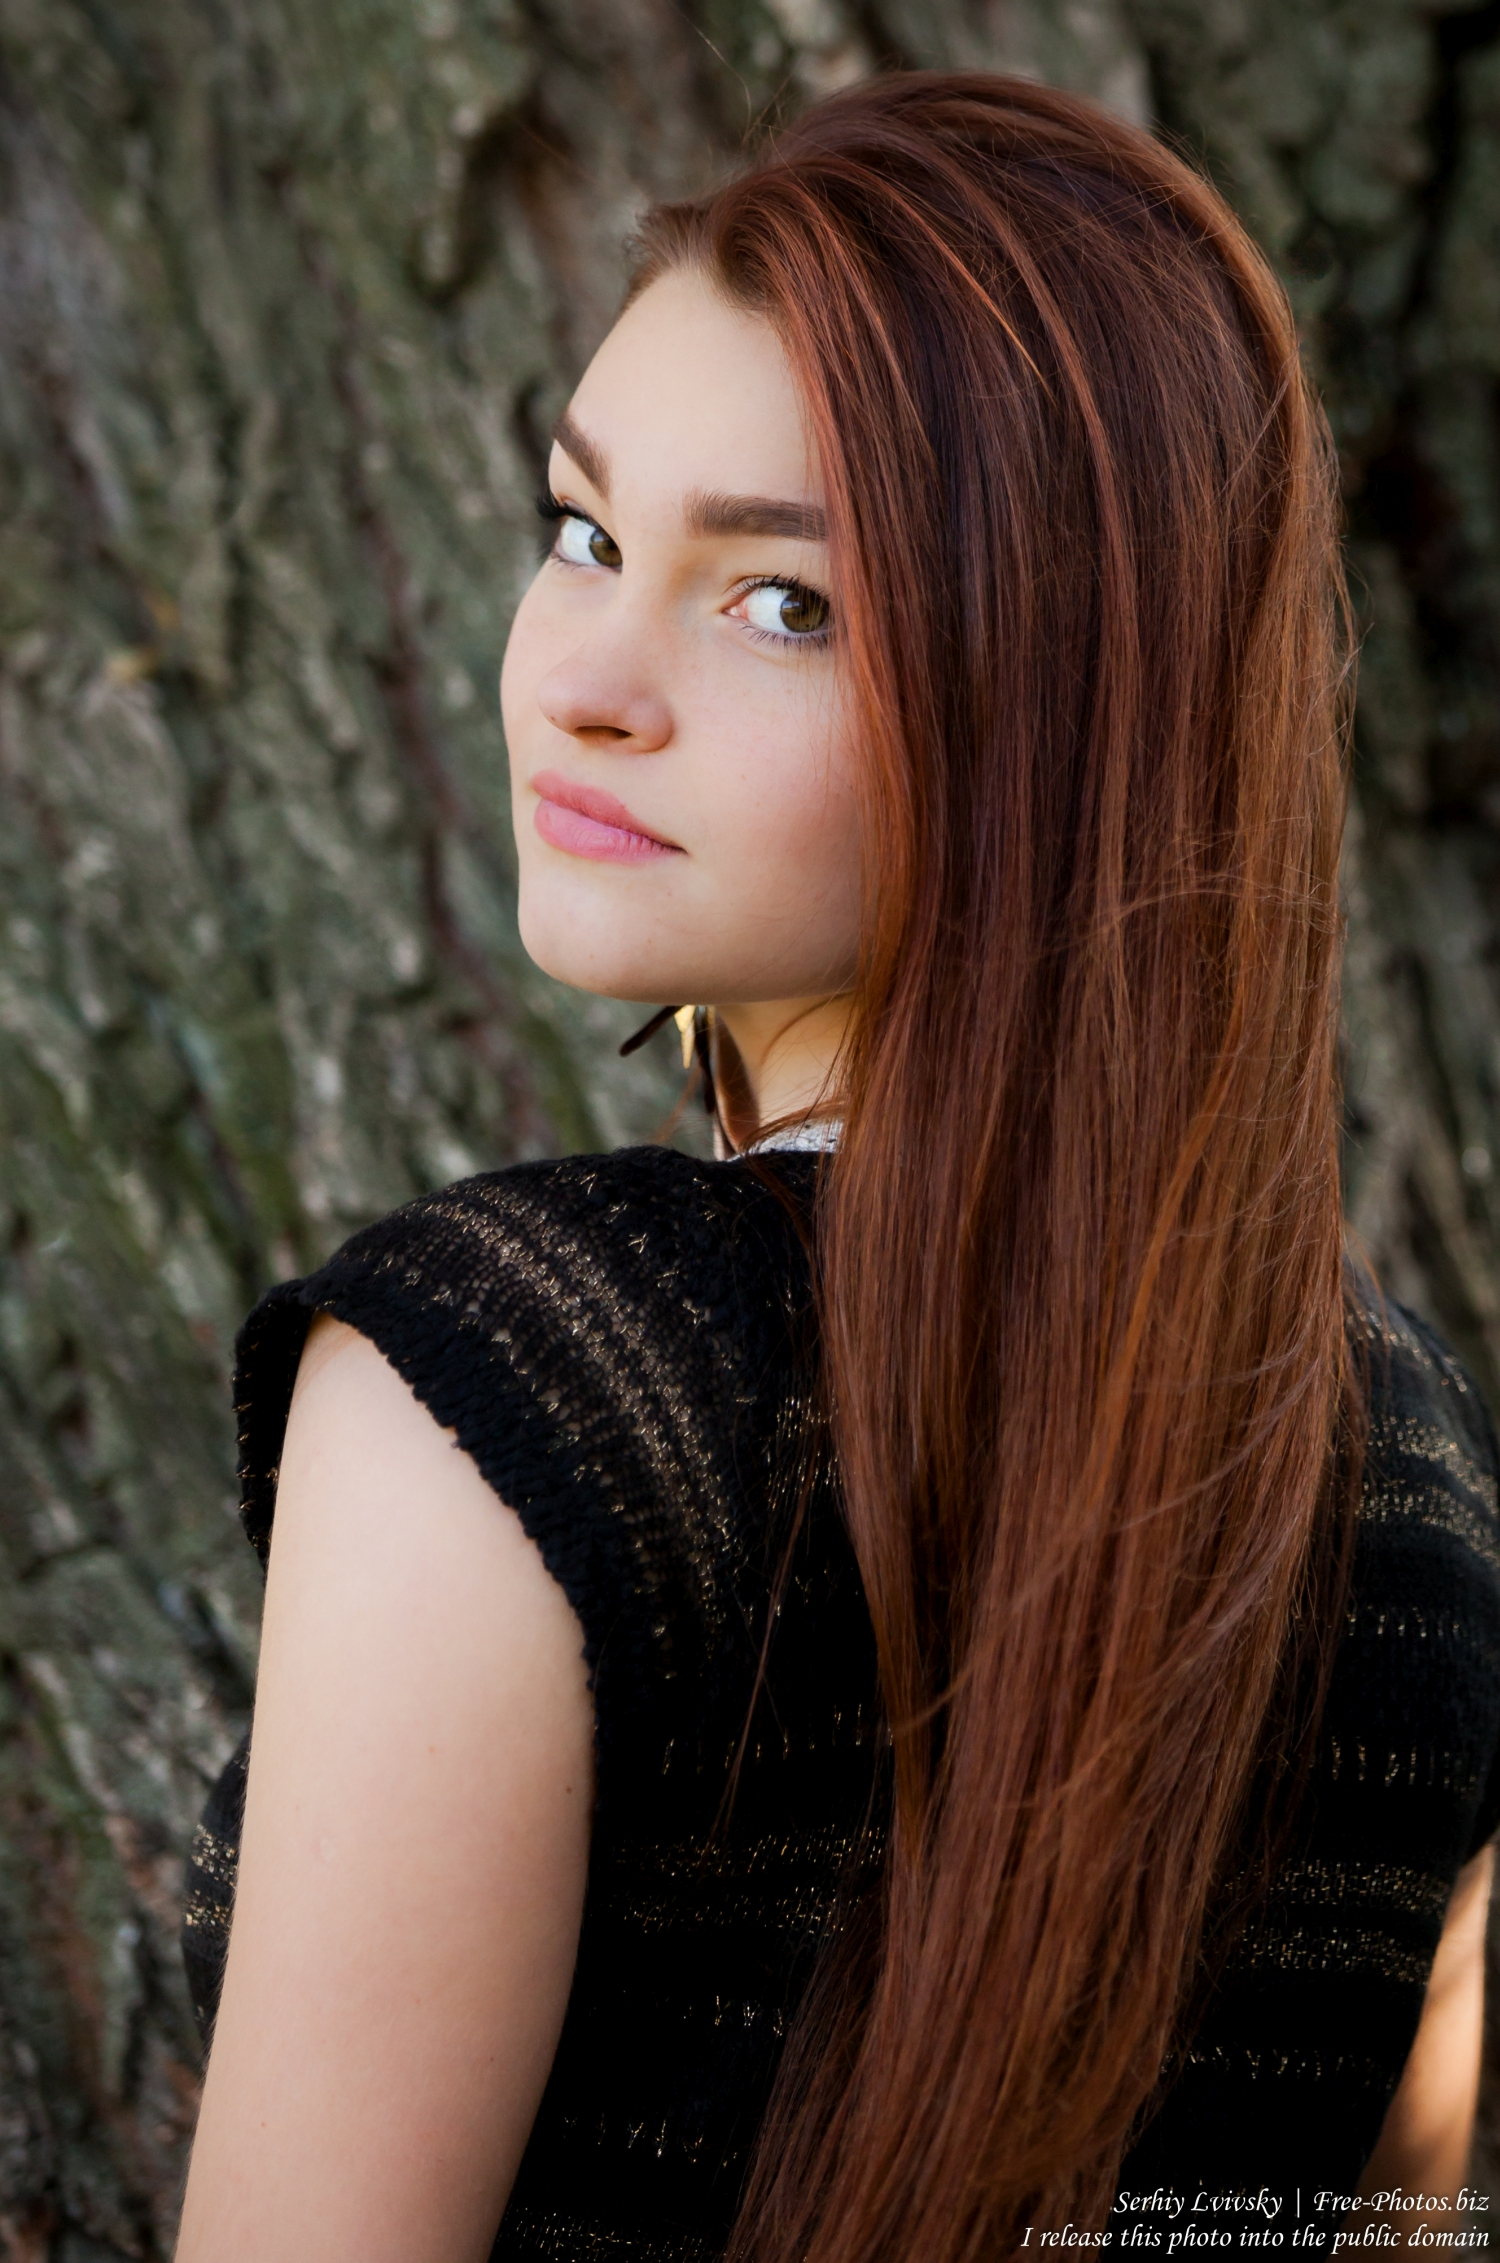 an_18-year-old_girl_photographed_by_serhiy_lvivsky_in_oct_2015_17